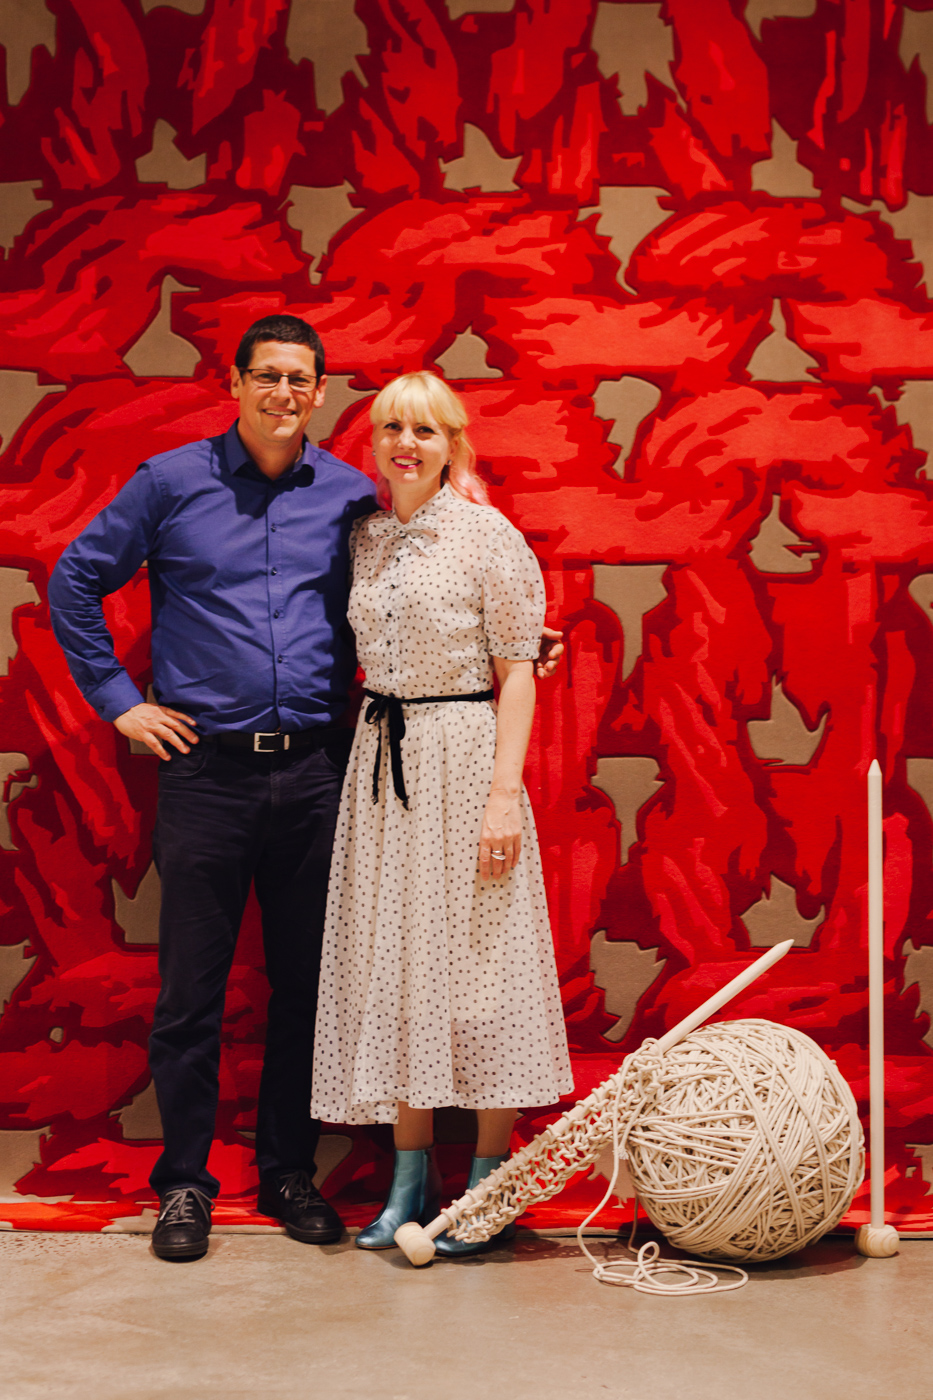 Yosi Tal of Designer Rugs with Petrina Turner | NEW AGAIN by Petrina Turner Design for Designer Rugs | The launch event